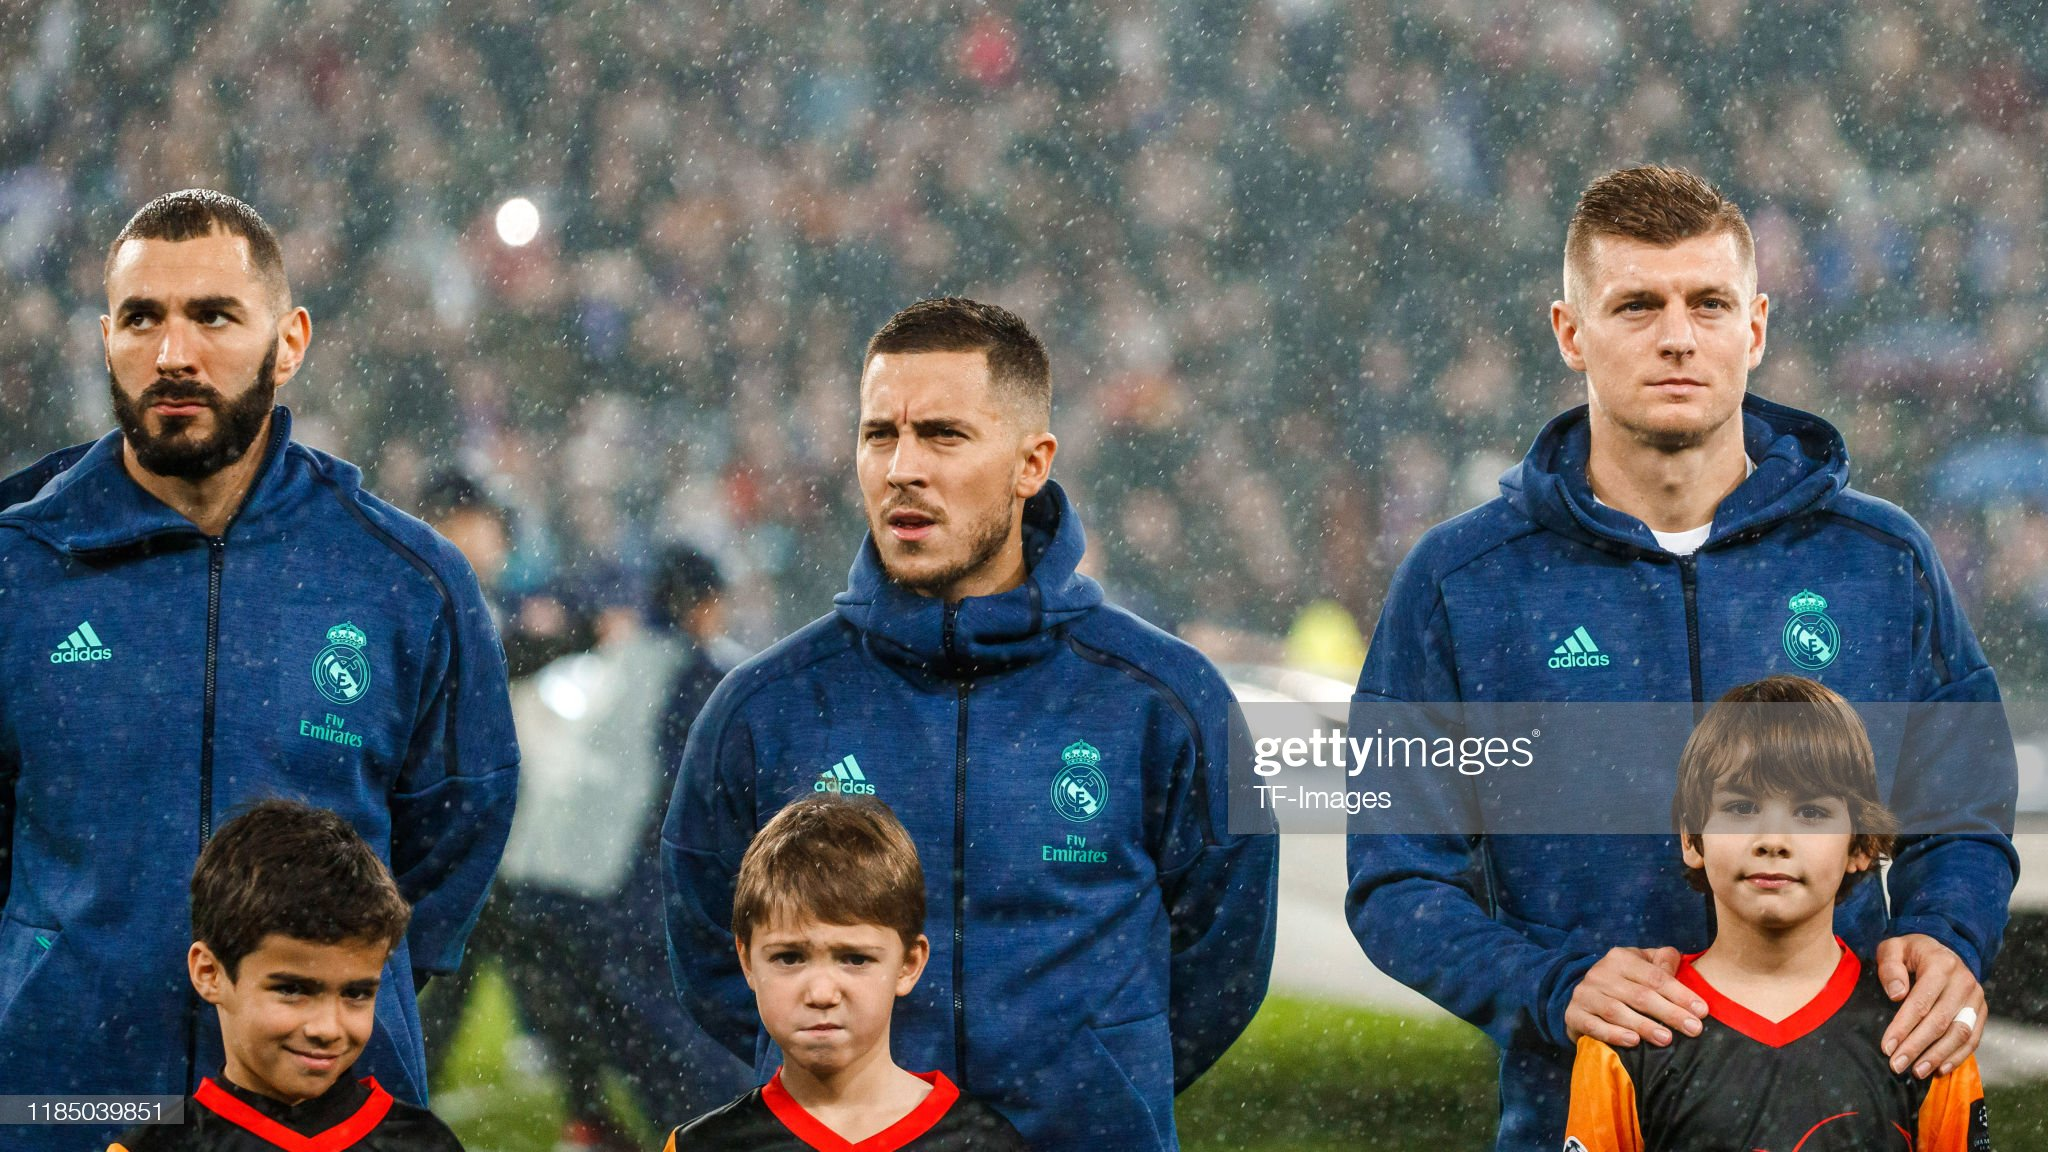 ¿Cuánto mide Eden Hazard? - Altura y peso - Real height and weight - Página 17 Karim-benzema-eden-hazard-and-toni-kroos-of-real-madrid-looks-on-to-picture-id1185039851?s=2048x2048